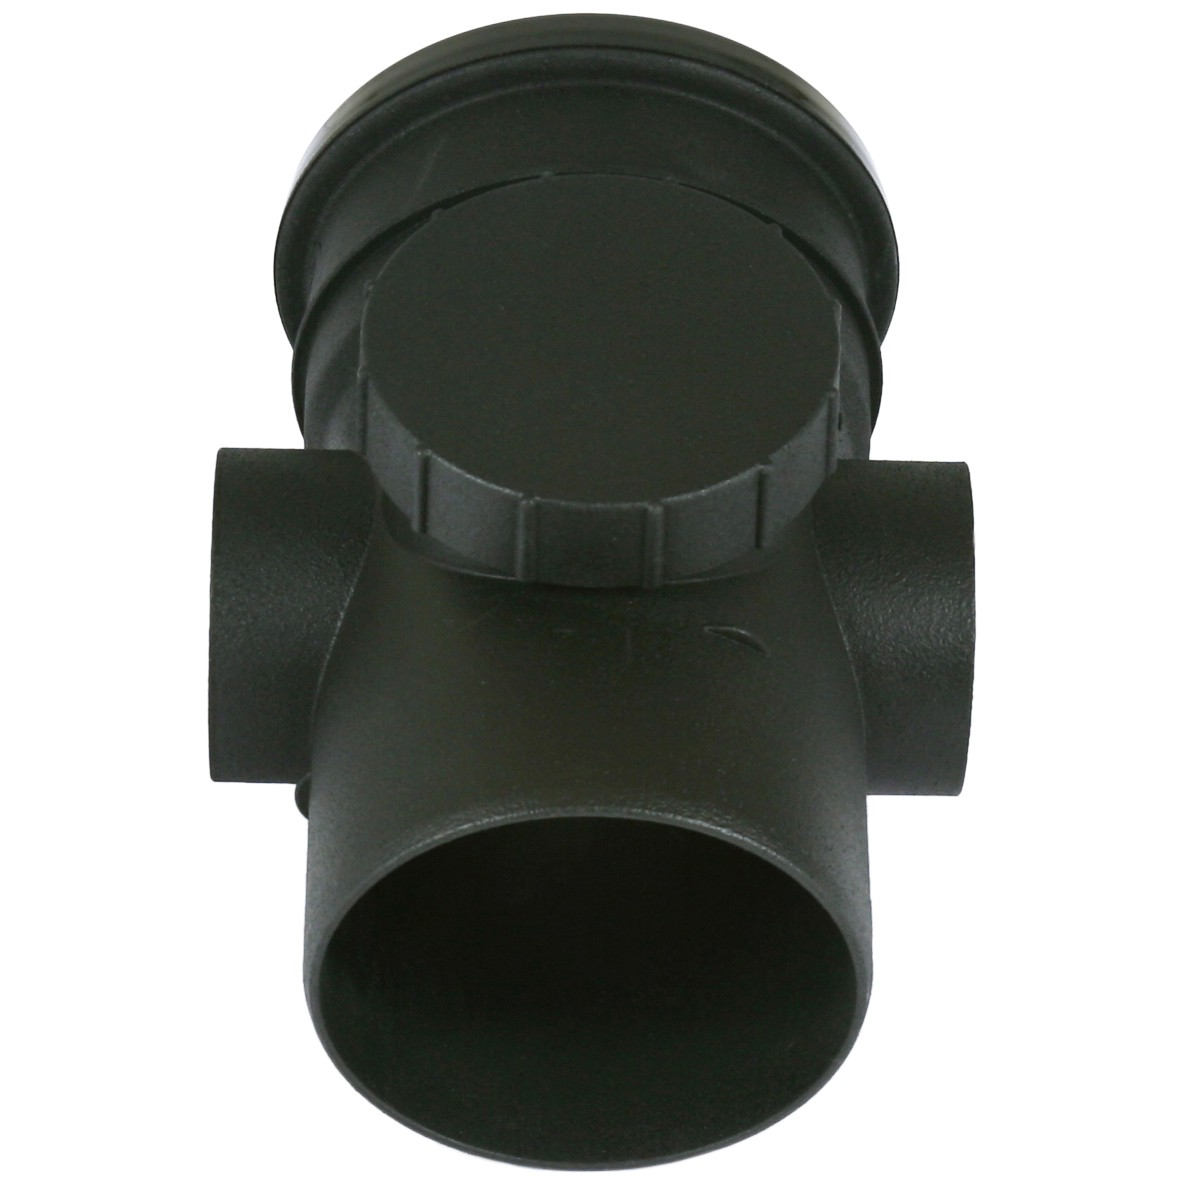 Cascade 110mm Cast Iron Style Soil Access Pipe - Black